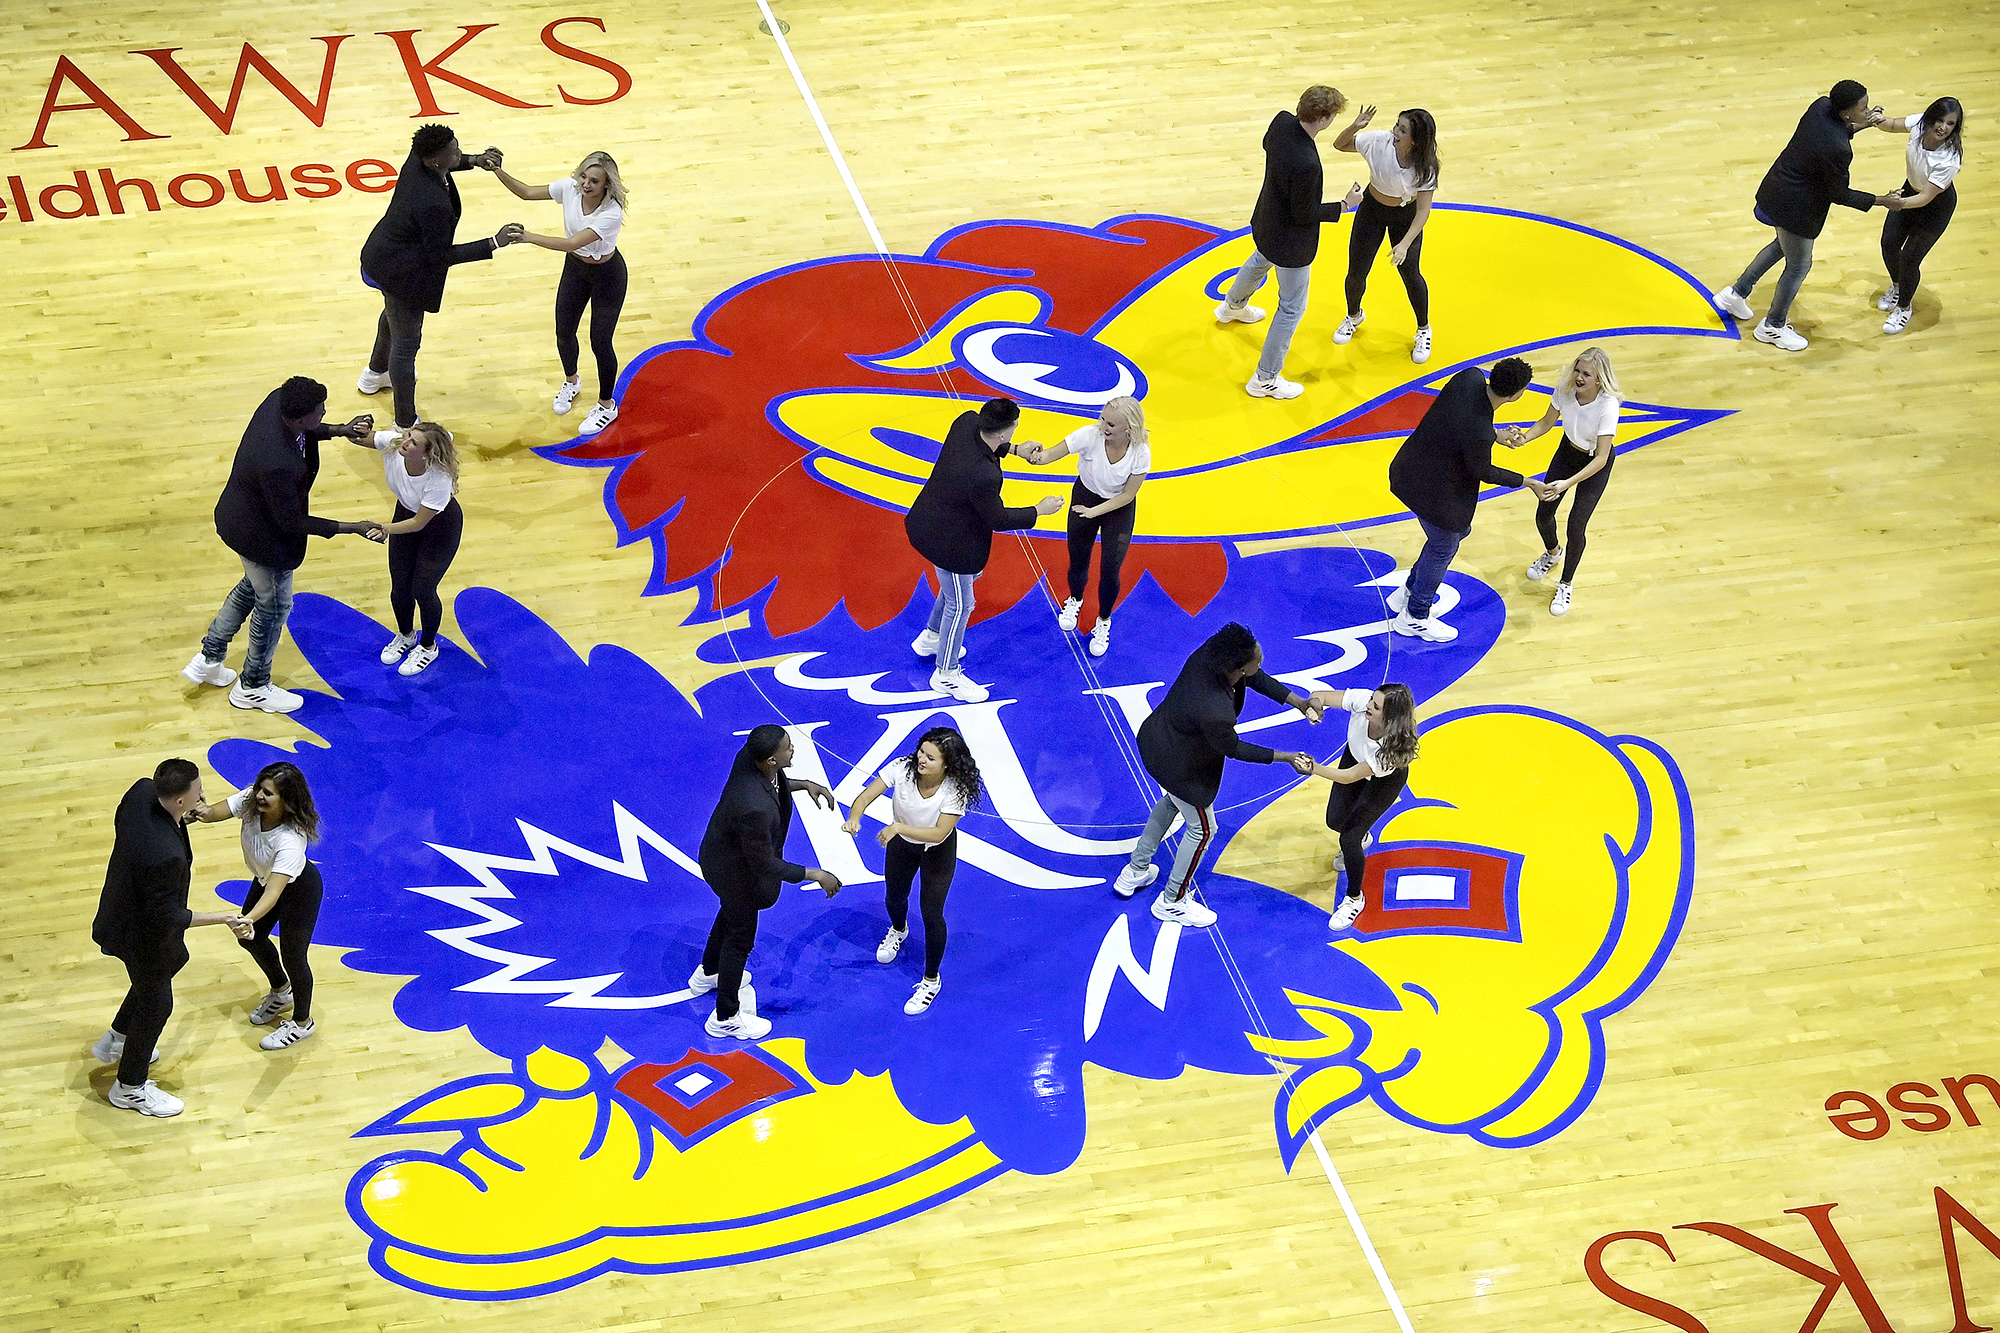 DANCE MEN – Teaming with the Rock Chalk Dancers, the KU men showed off their dance moves.